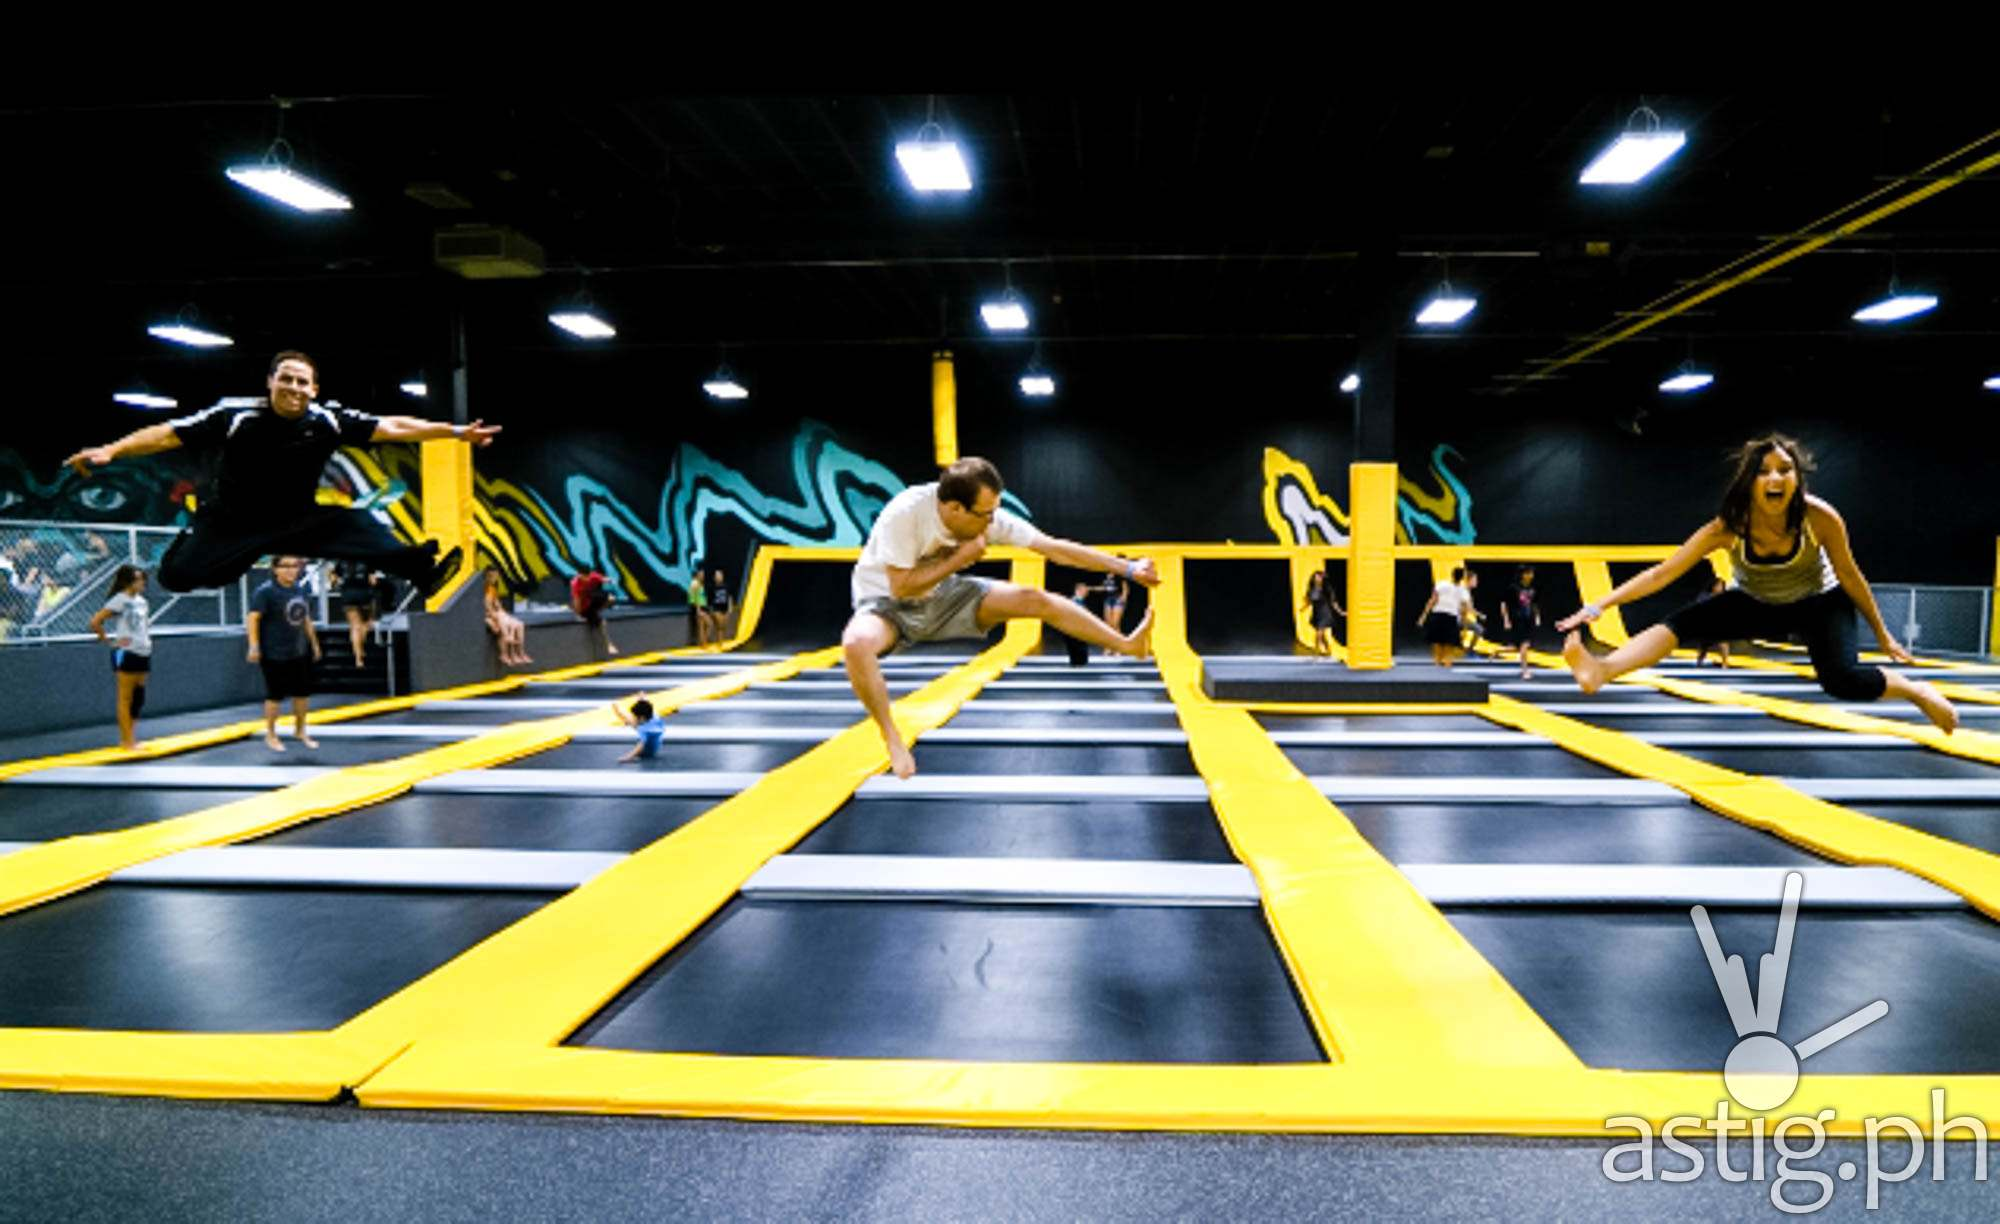 Trampoline Park: Philippines' first flying adventure to open in Mandaluyong [video] - ASTIG.PH